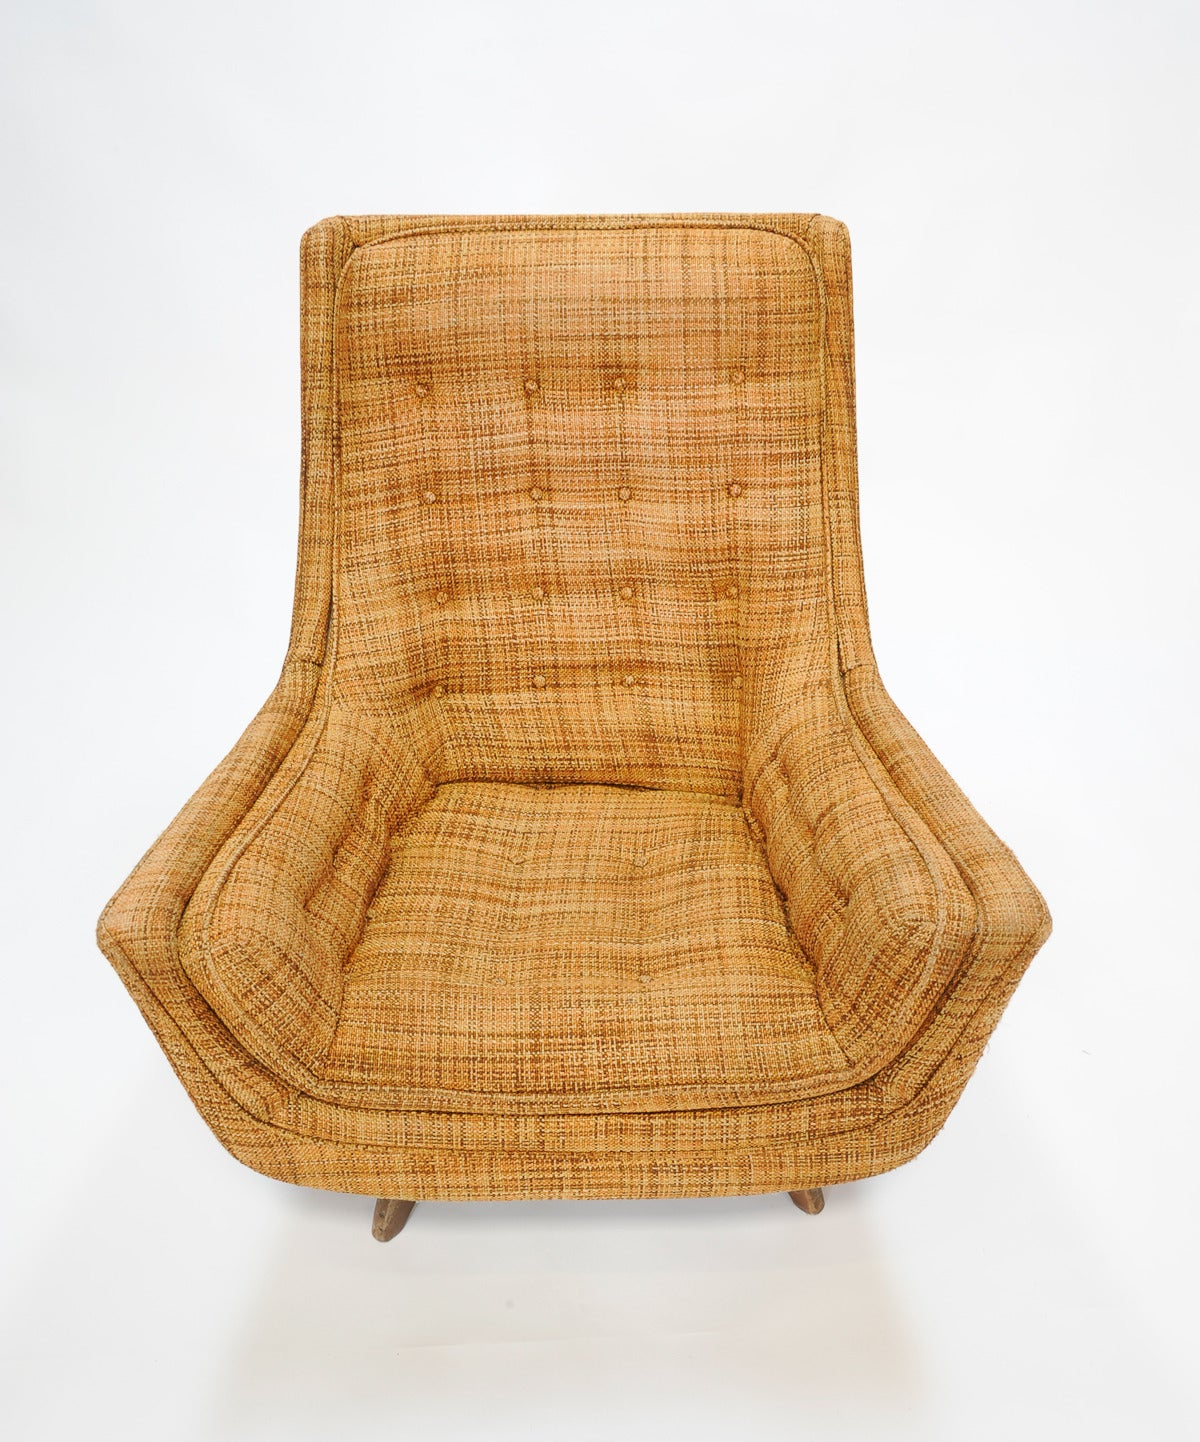 adrian pearsall rocking chair teknion office club for sale at 1stdibs